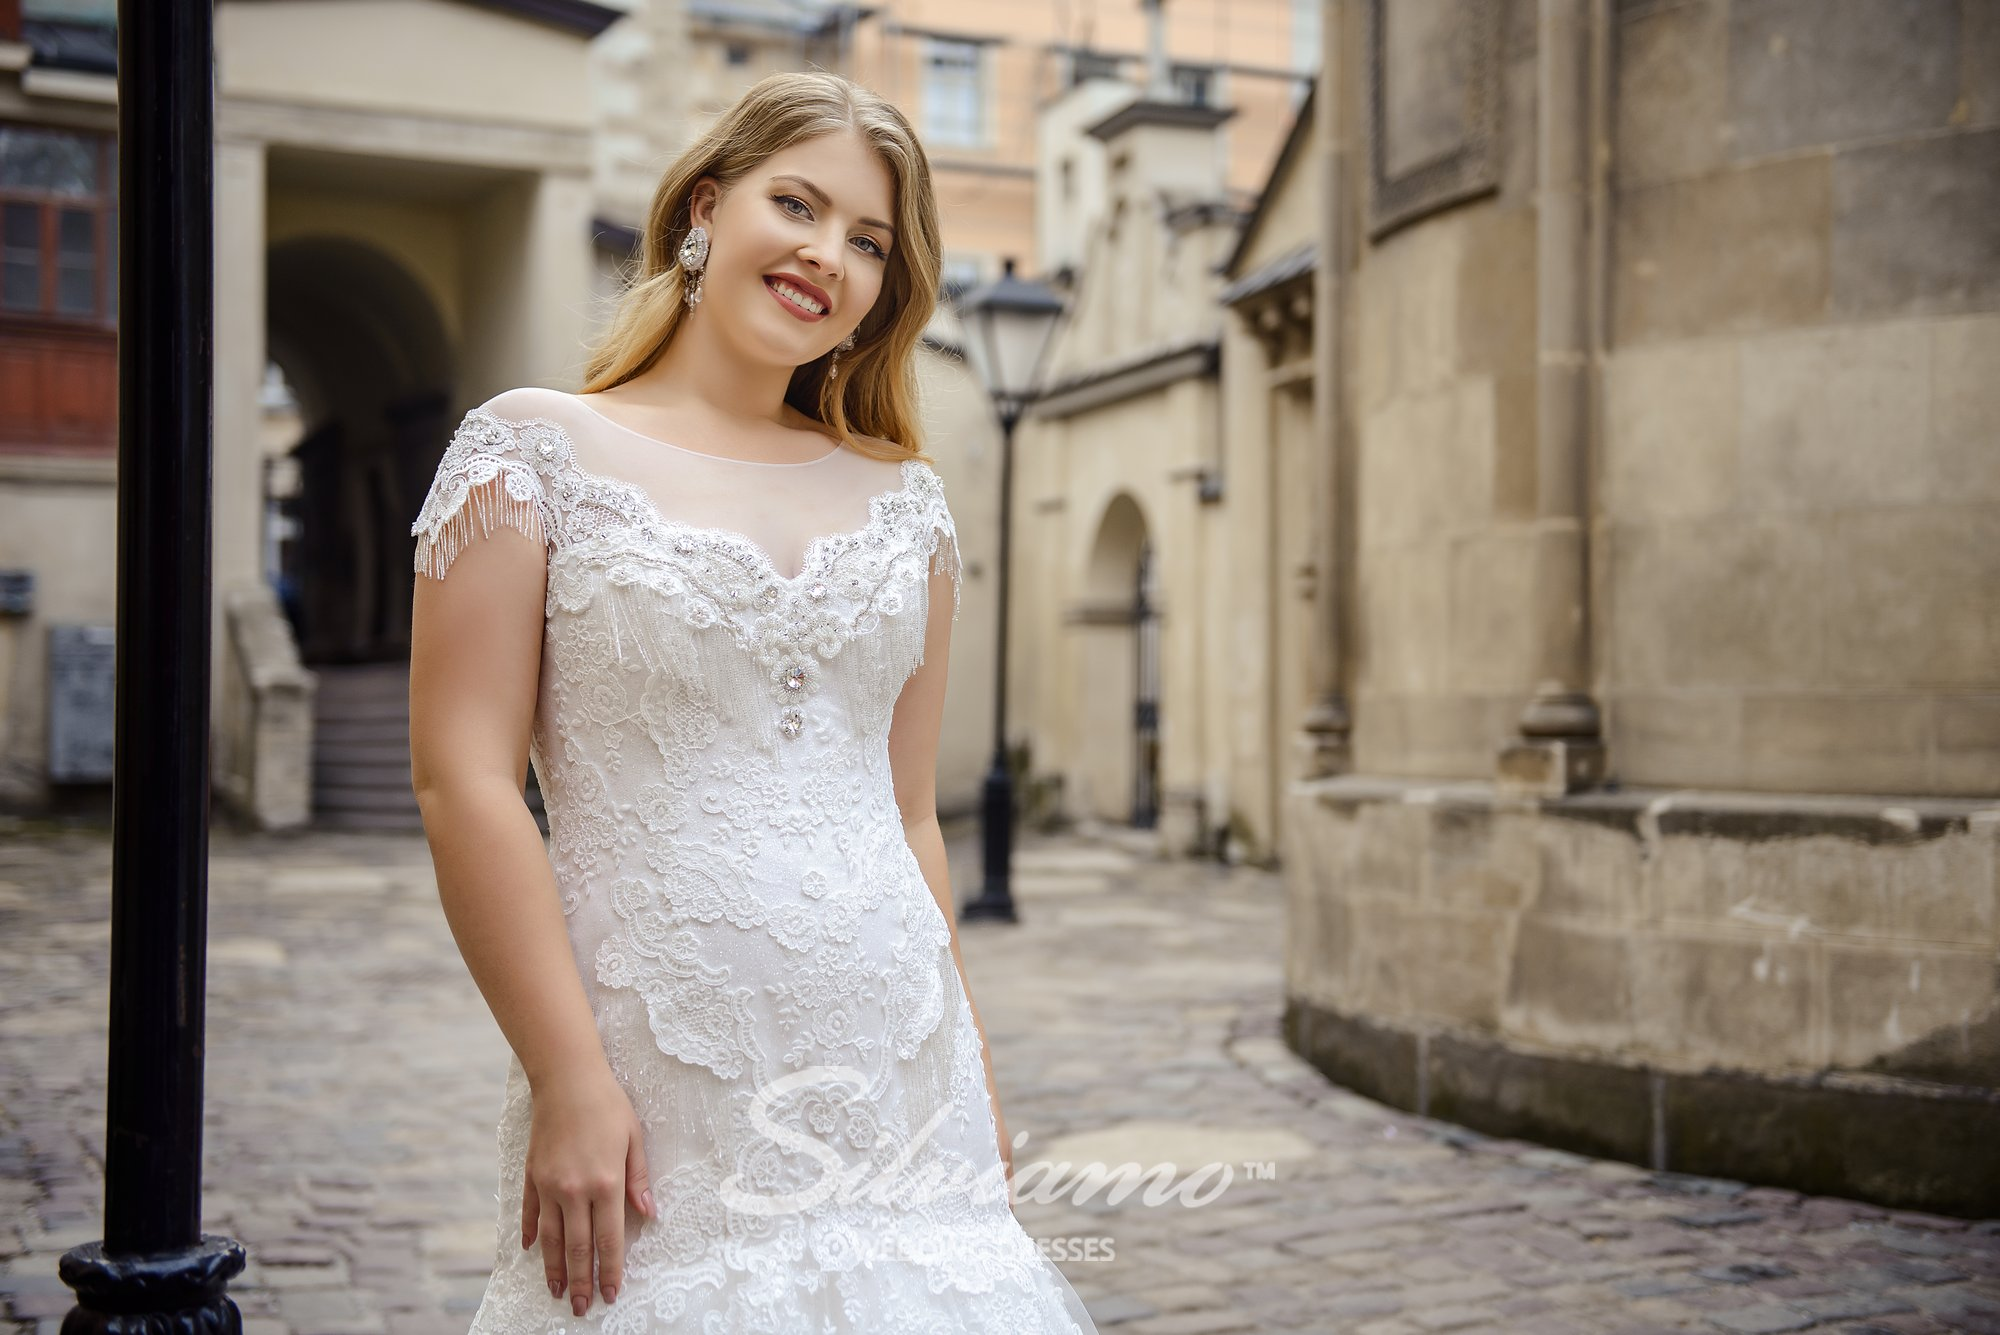 Plus size wedding dress of